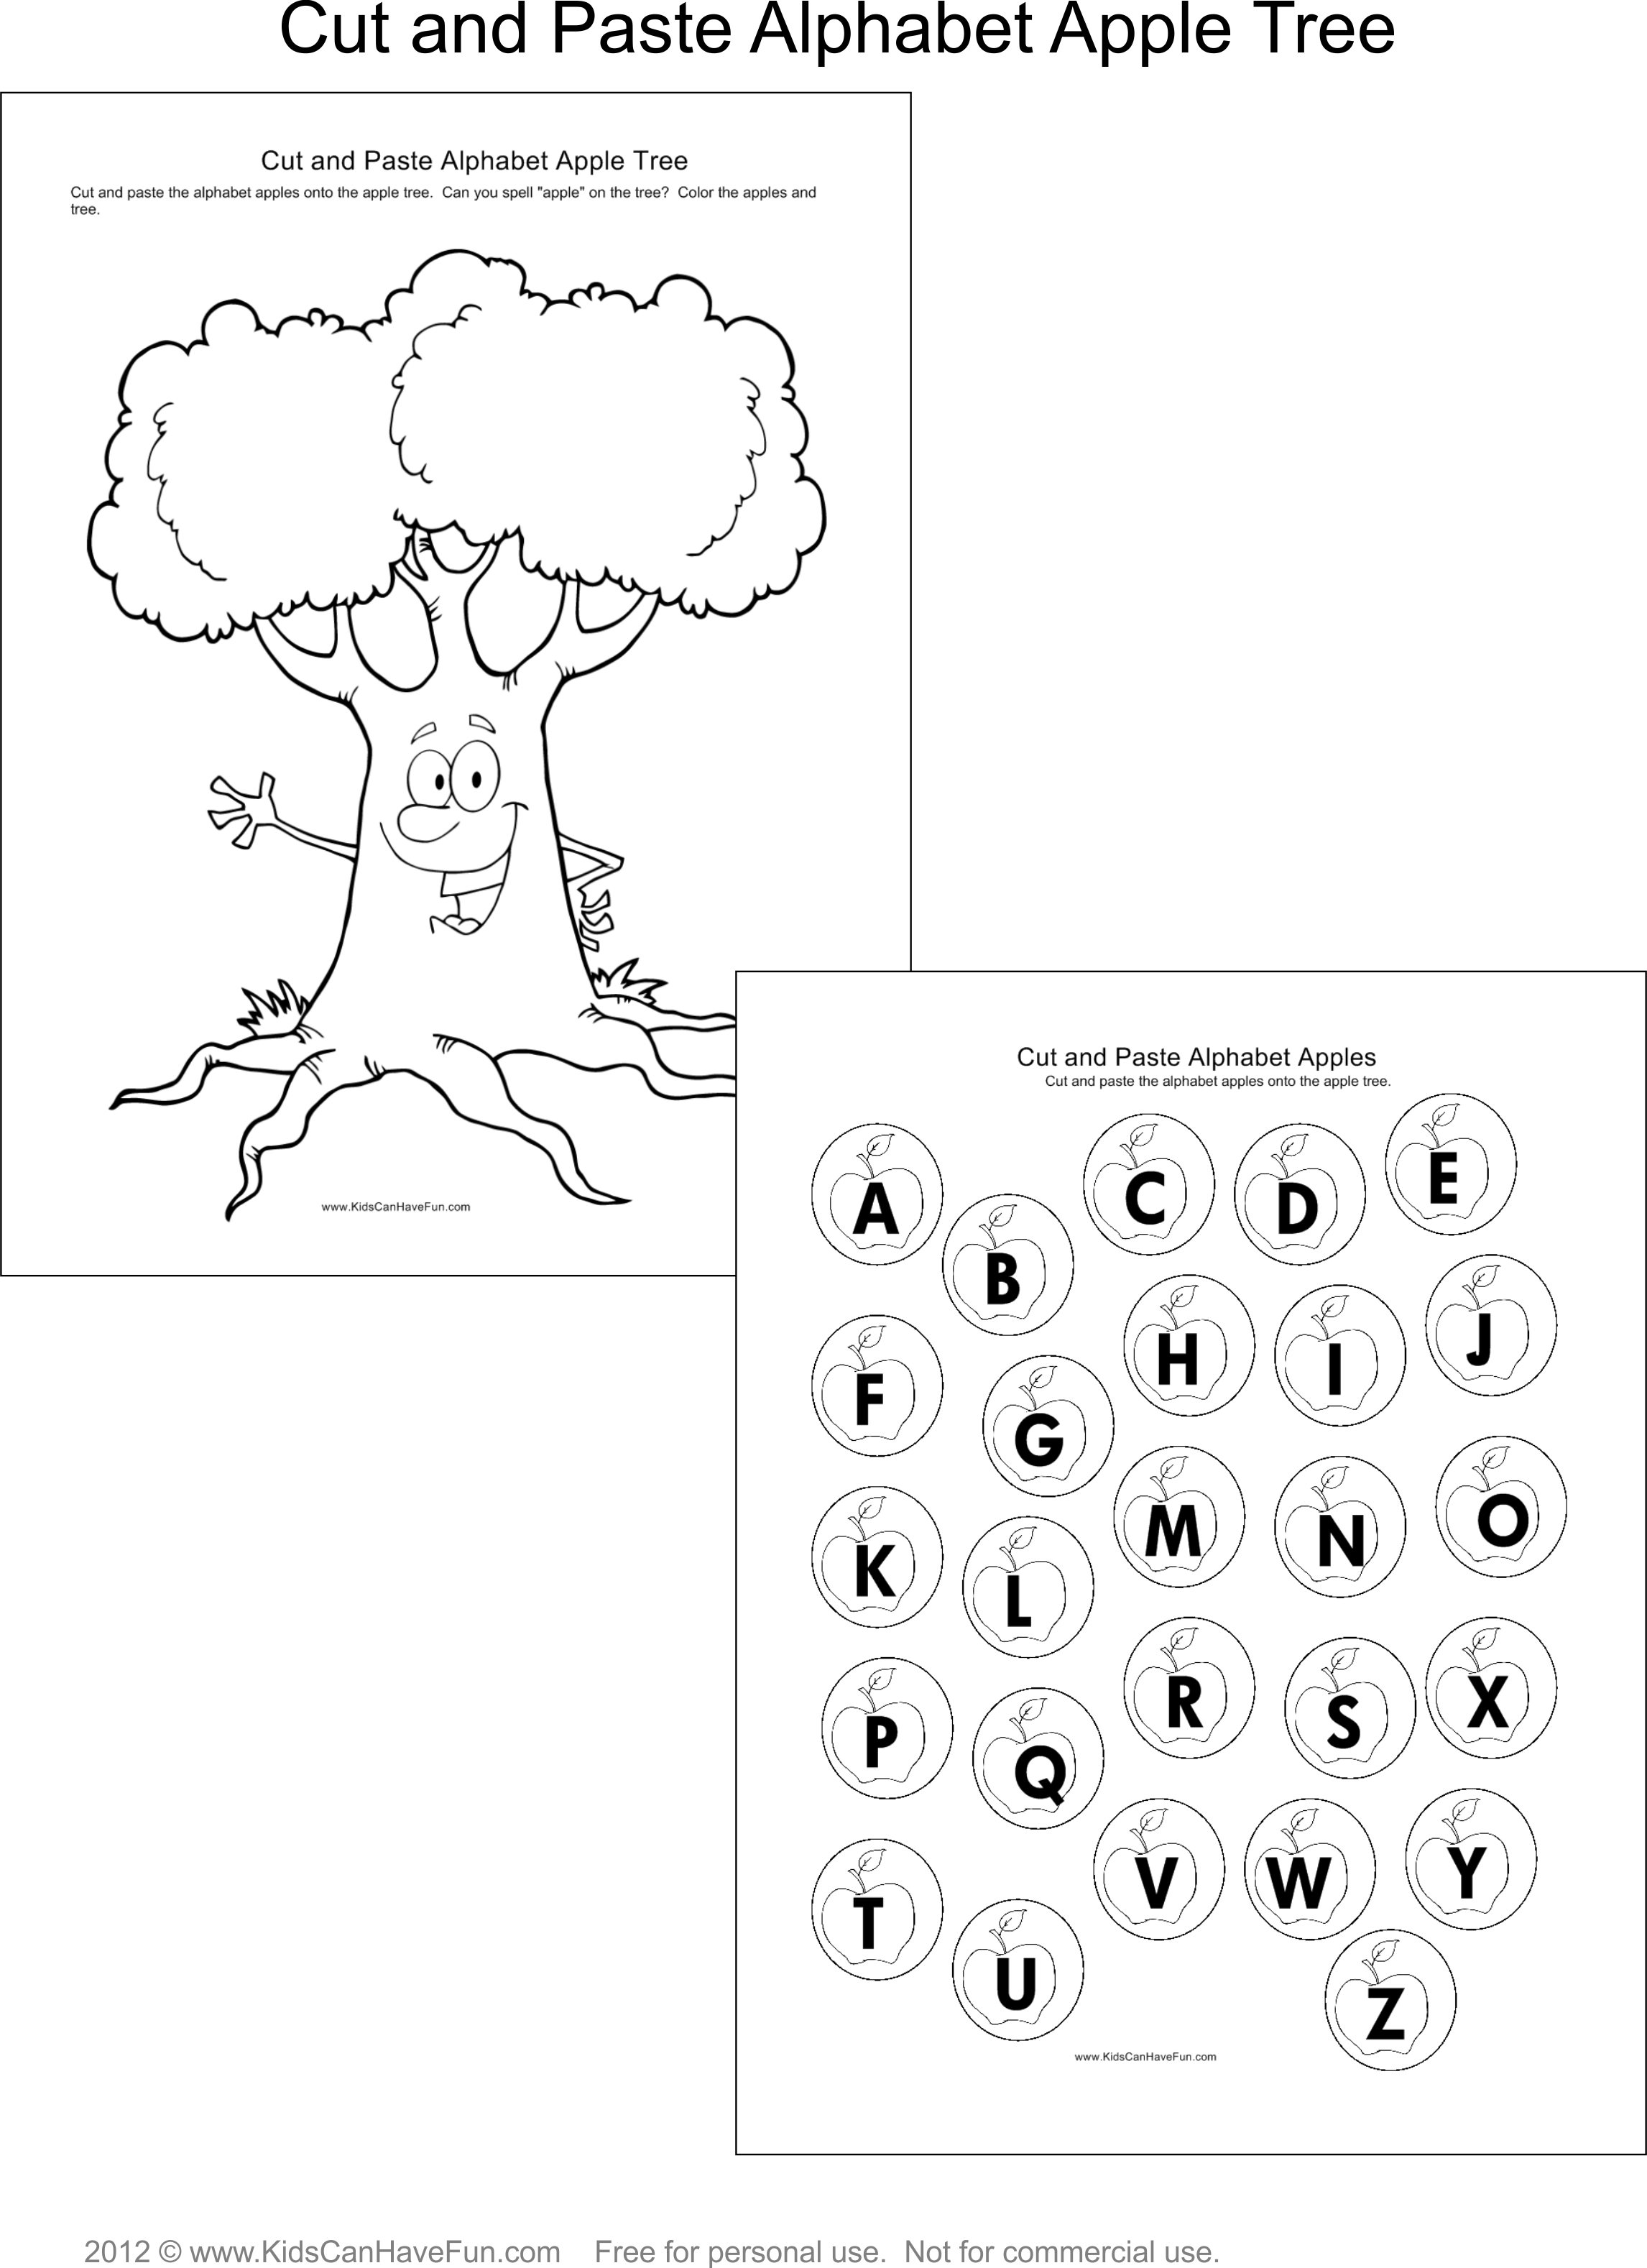 Pin By Kidscanhavefun On Cut And Paste Worksheets Activities For Preschool